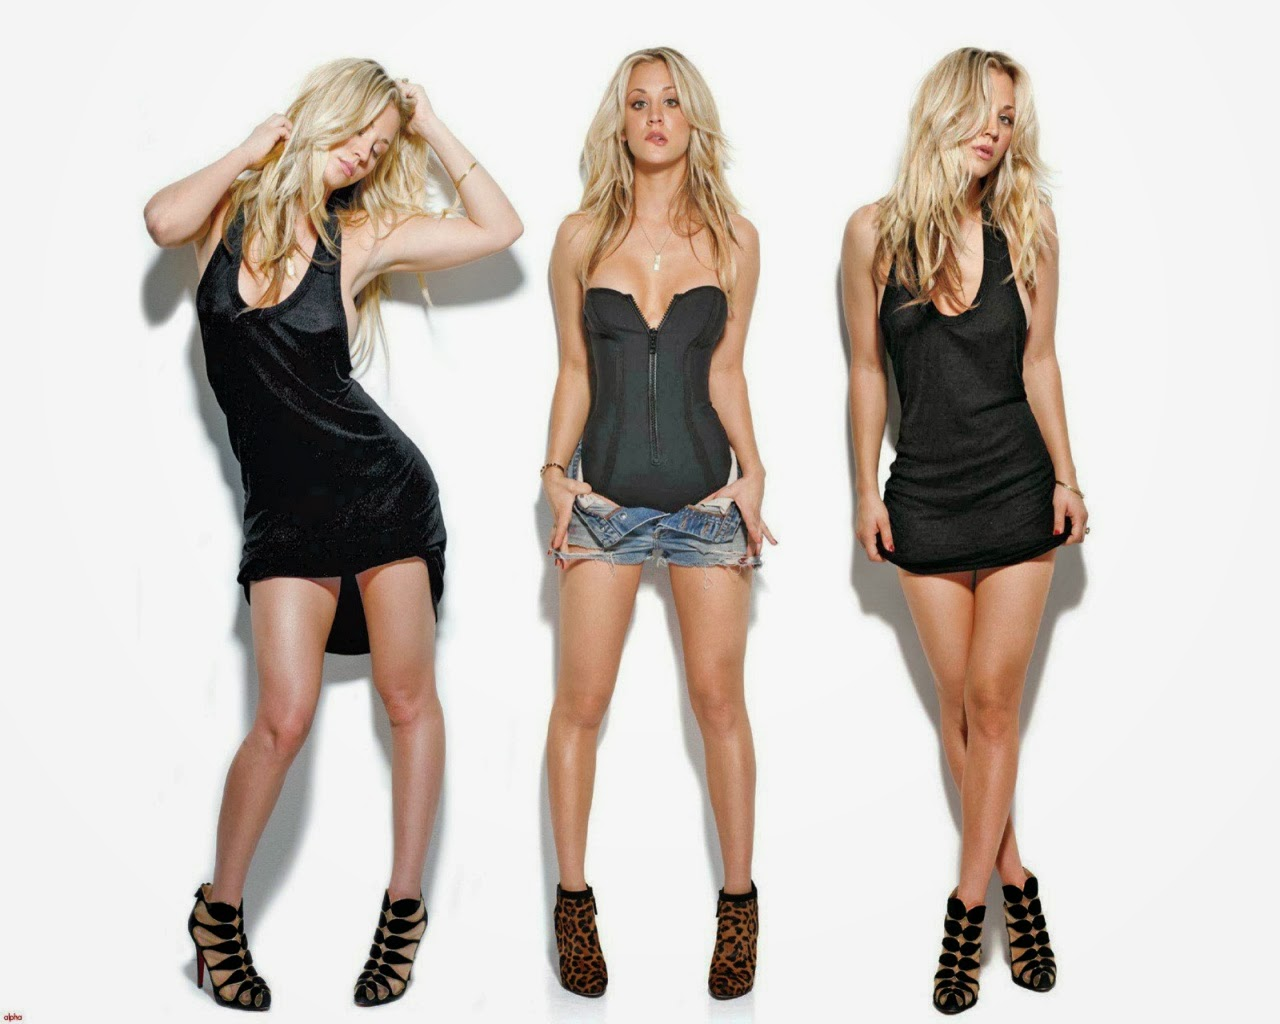 Kaley Cuoco 720p Background Wallpapers   HD Wallpapers Window Top 1280x1024